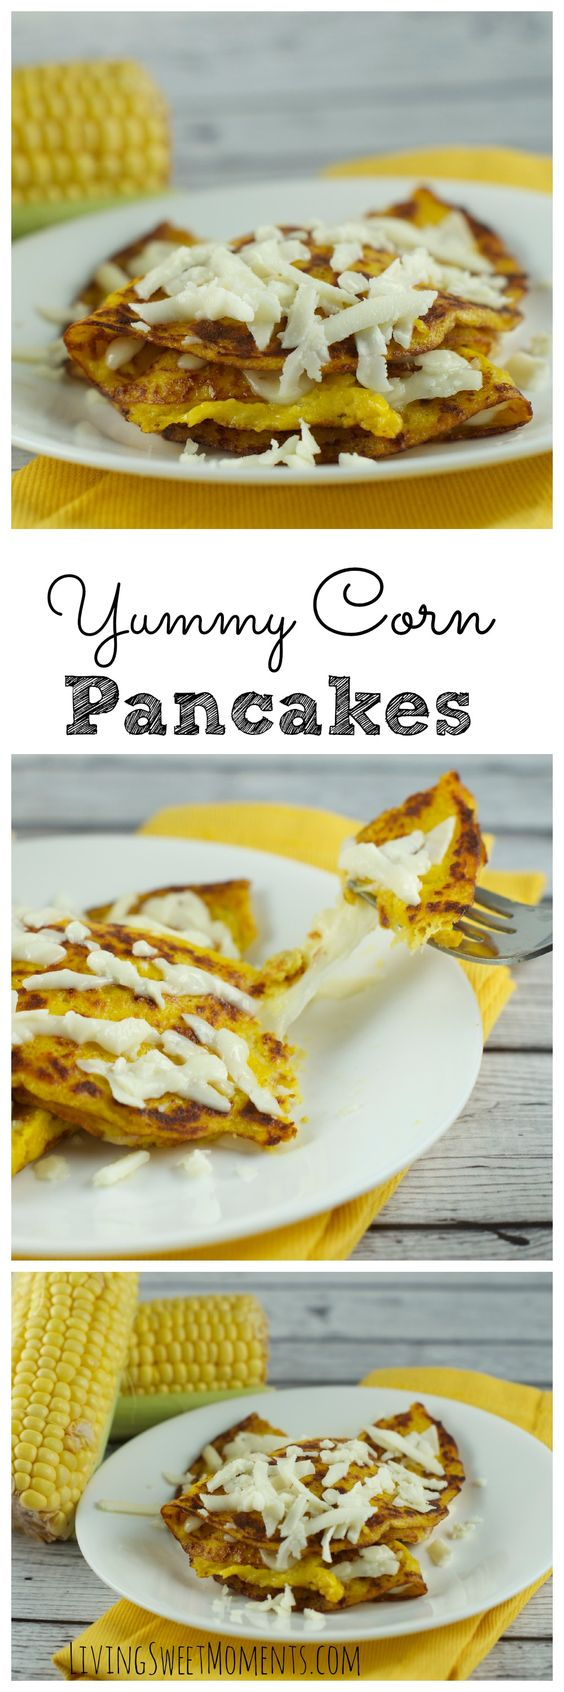 Delicious Corn Pancakes with cheese AKA Cachapas - Super  quick and easy dinner idea. Have them on your table in 10 minutes or less! Amazingly delicious